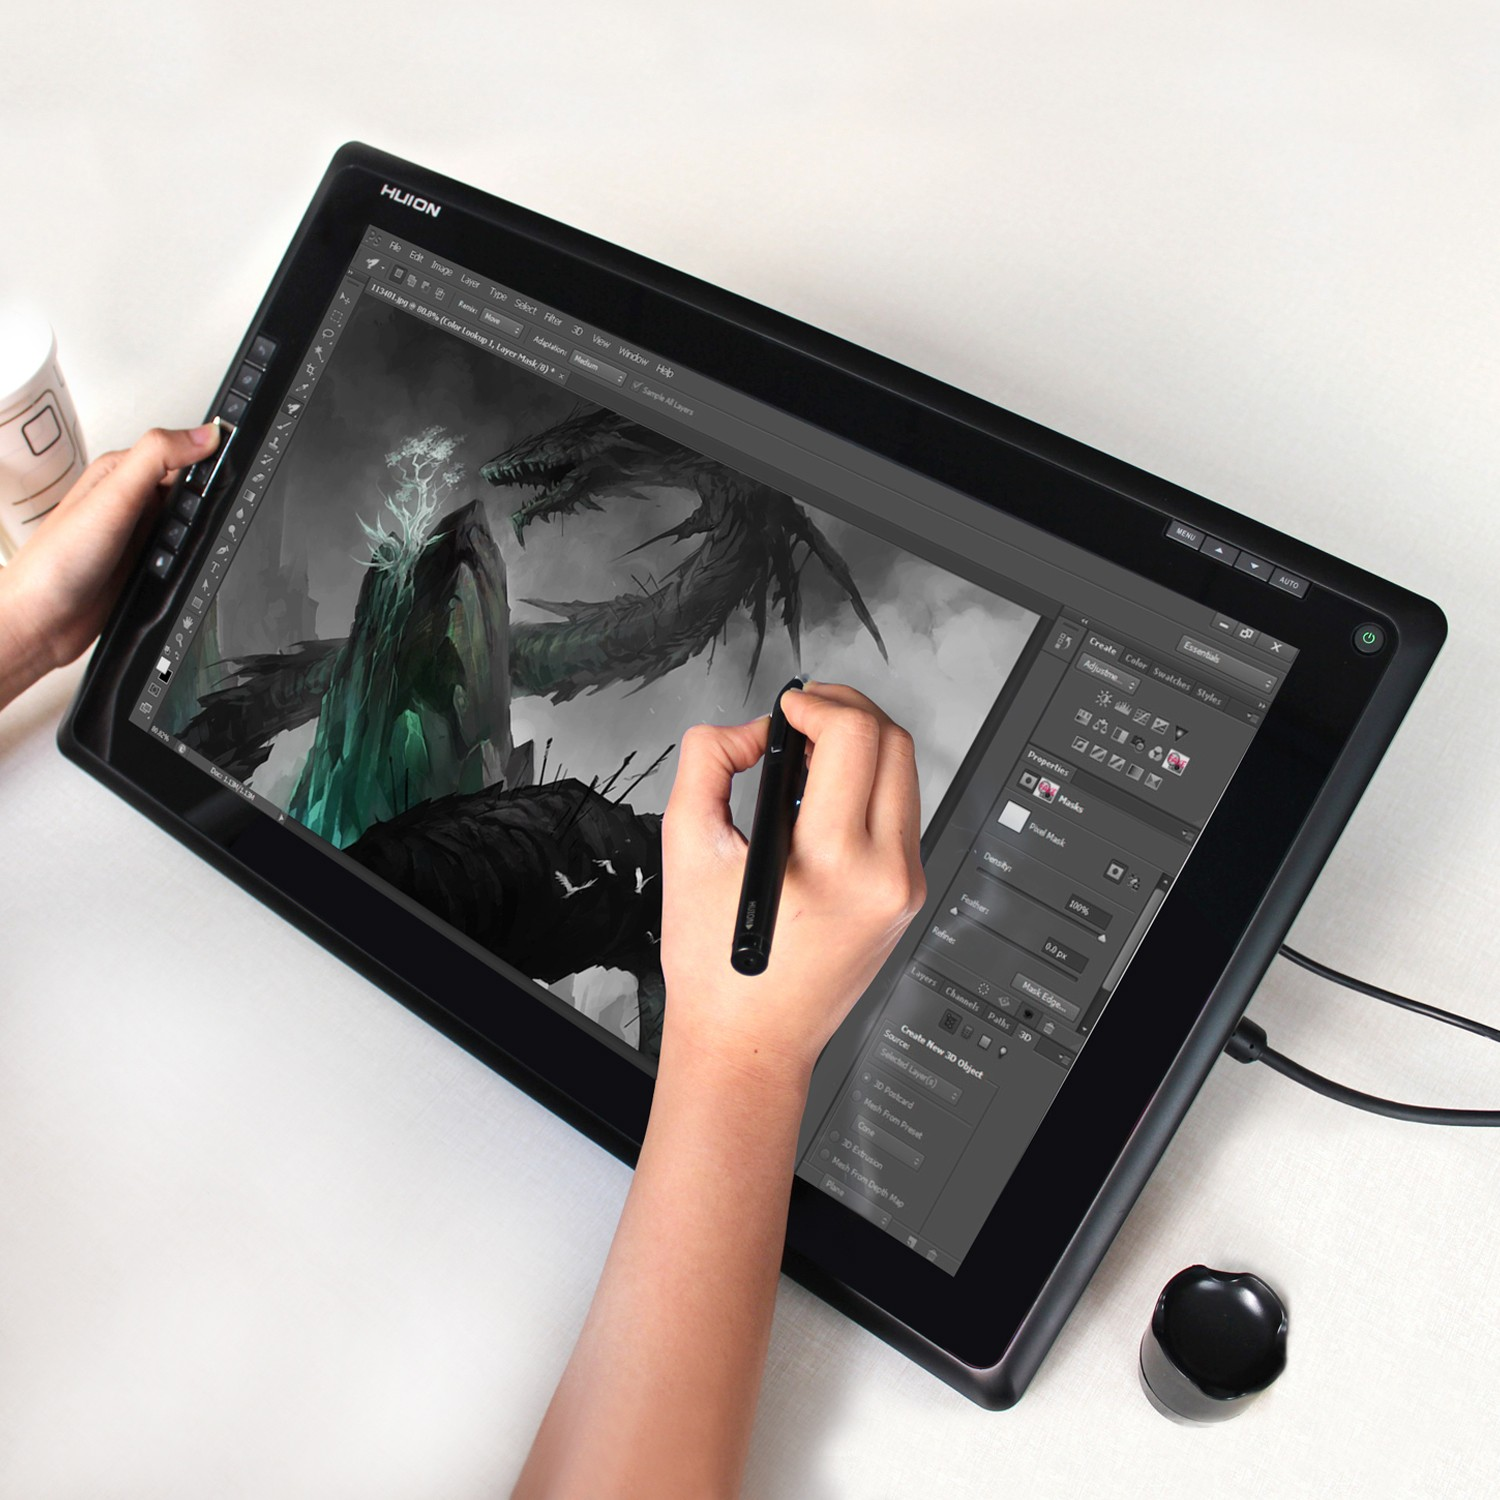 Huion Gt 185 Review Calidad Precio besides Books And Translations further Lioness Lying Down Drawing together with Tsc additionally 30th Anniversary Reunion Panel Lost Boys. on oscar drawing